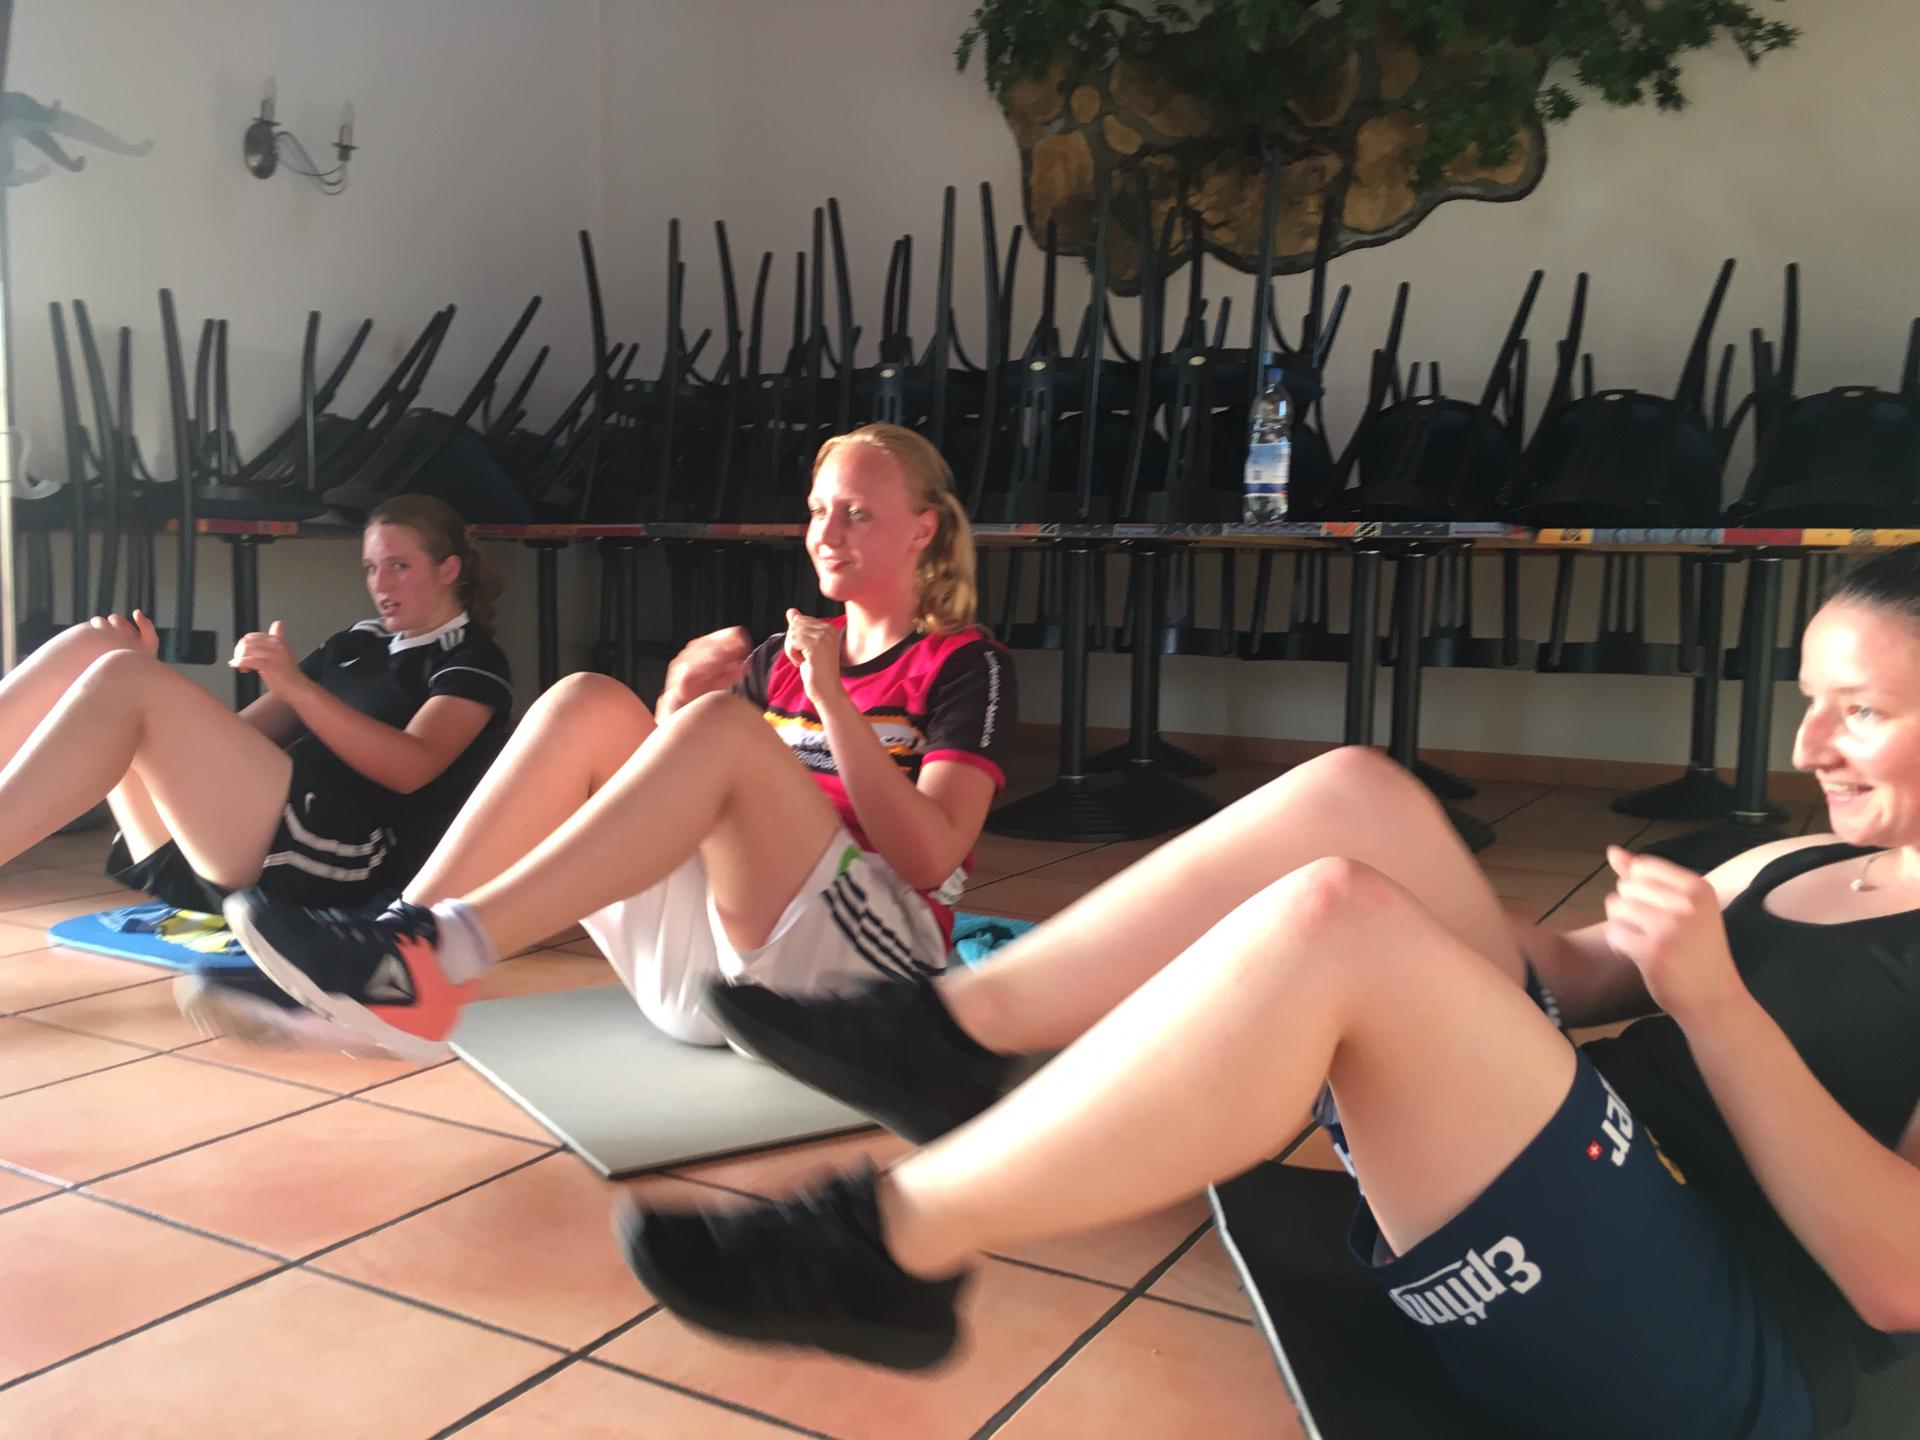 Sommertraining7.jpg